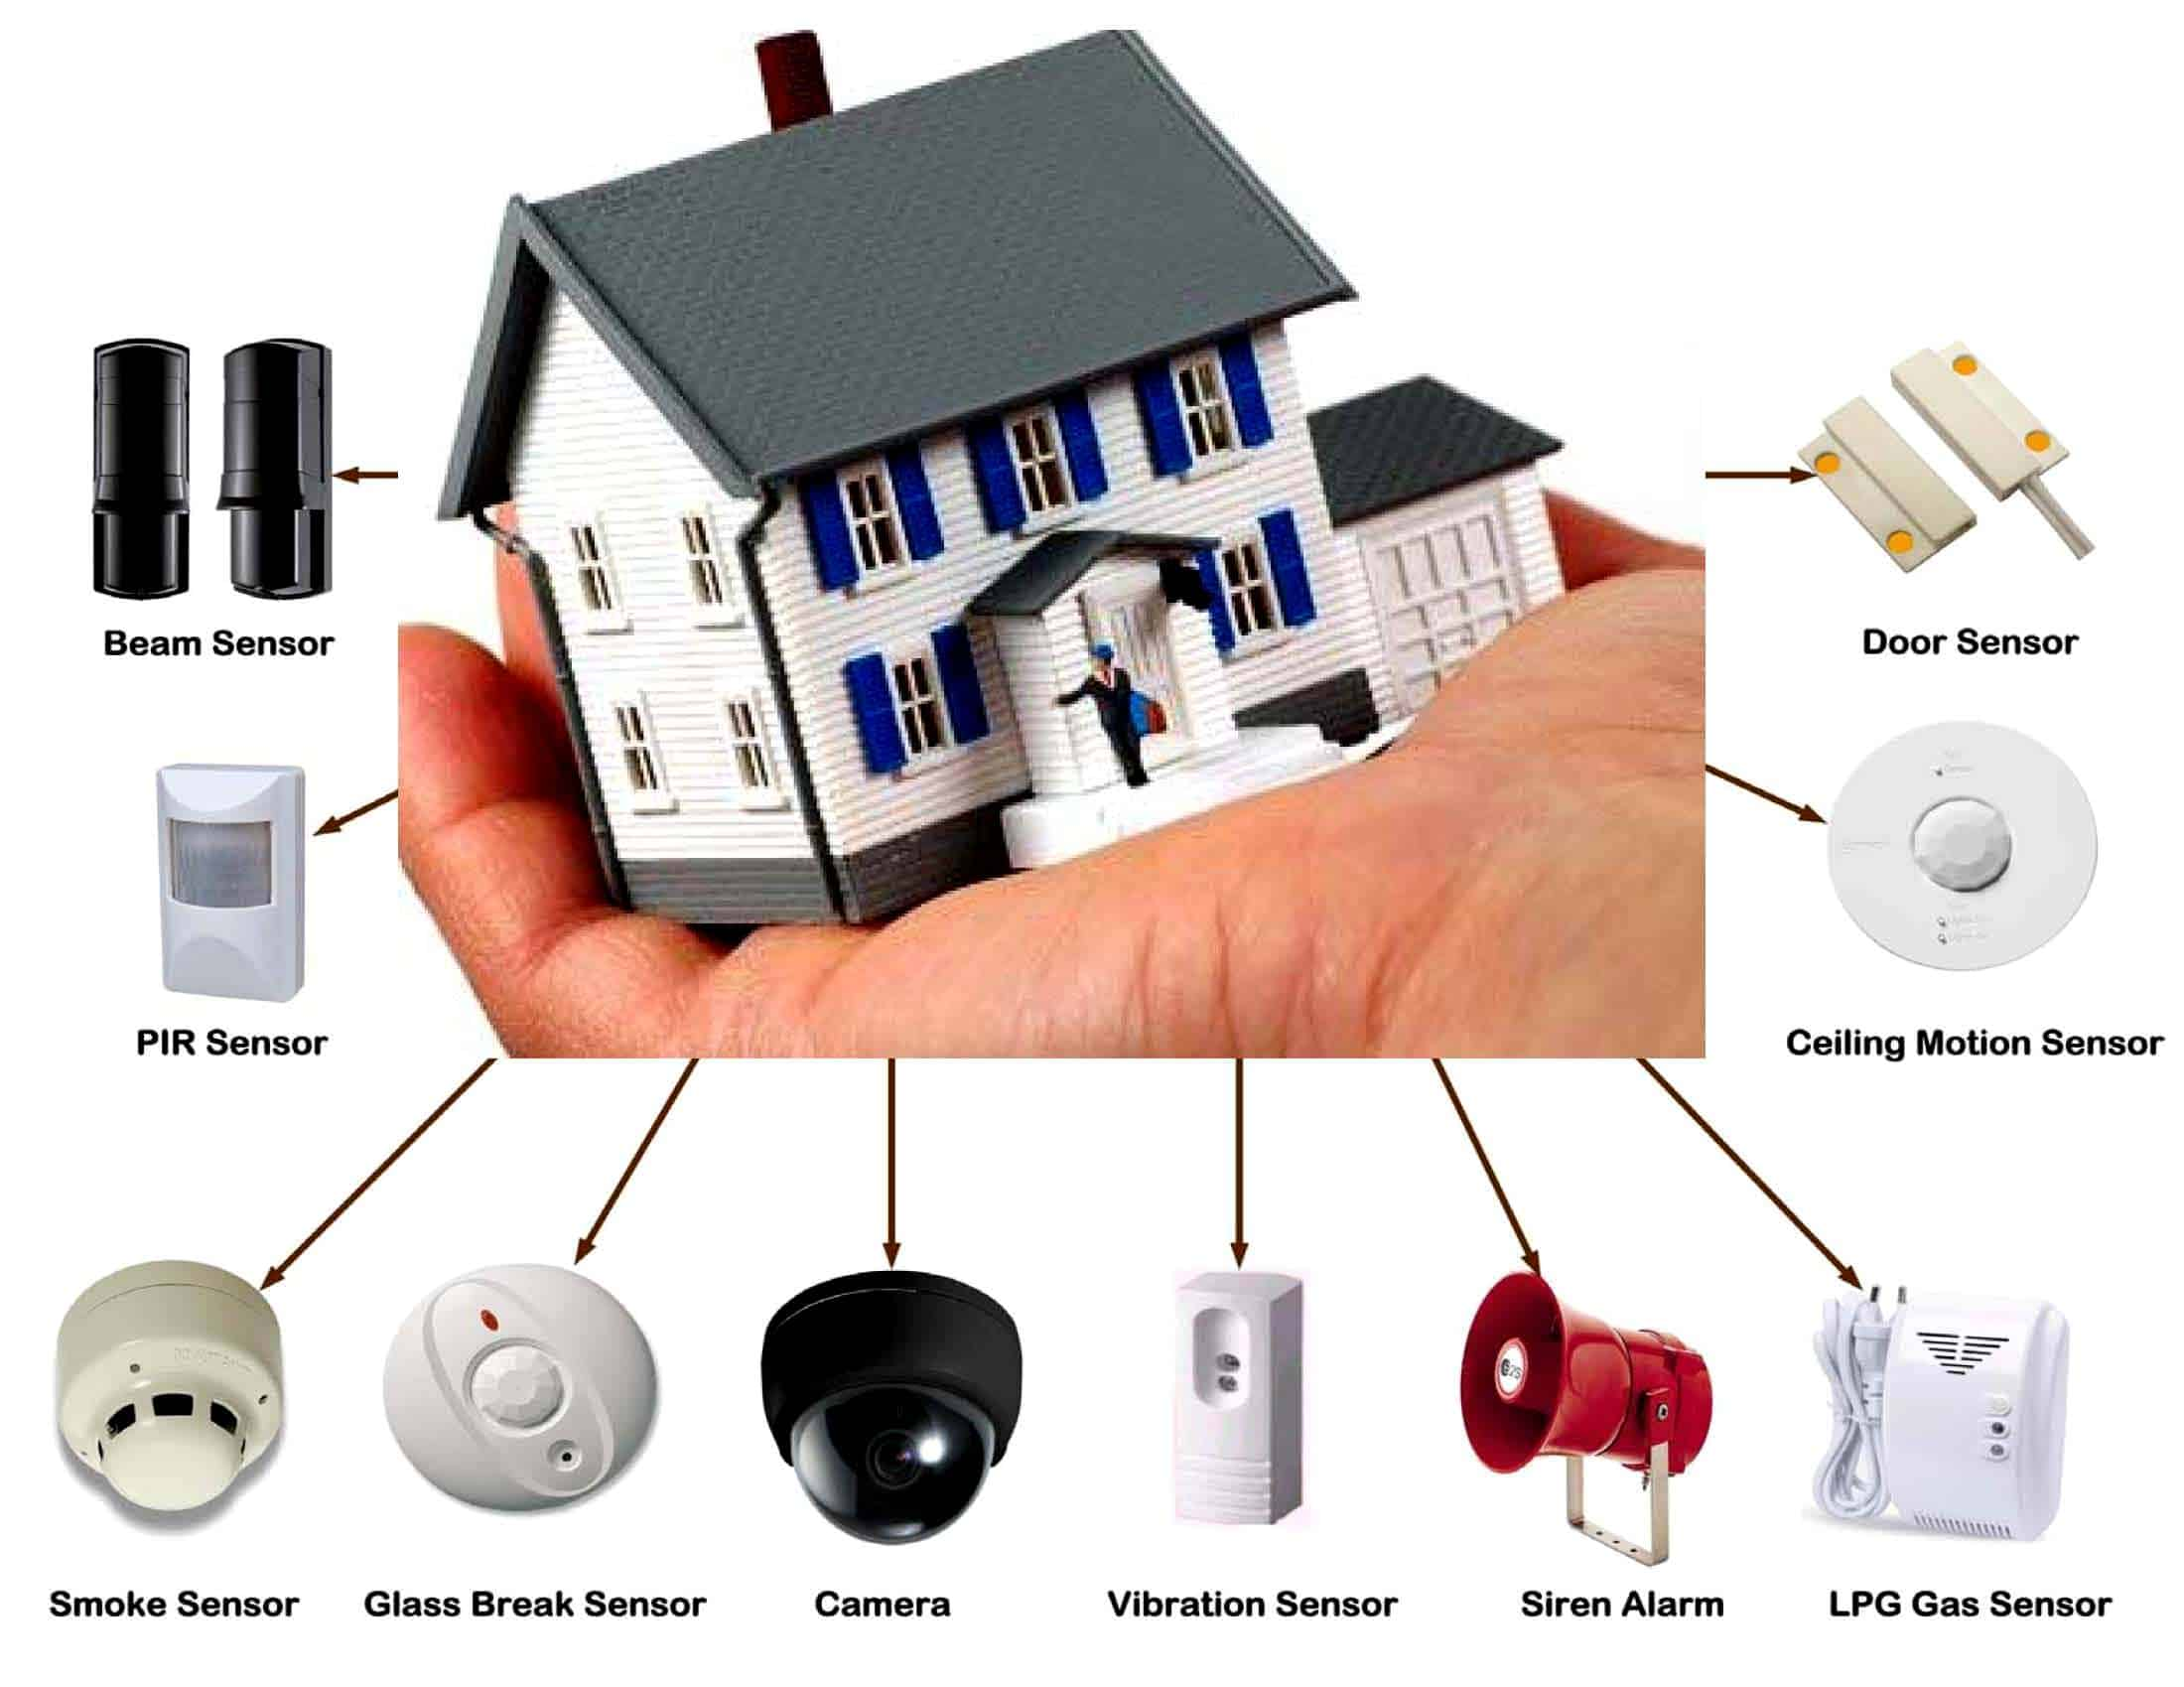 Tips for Building Your Home Security System